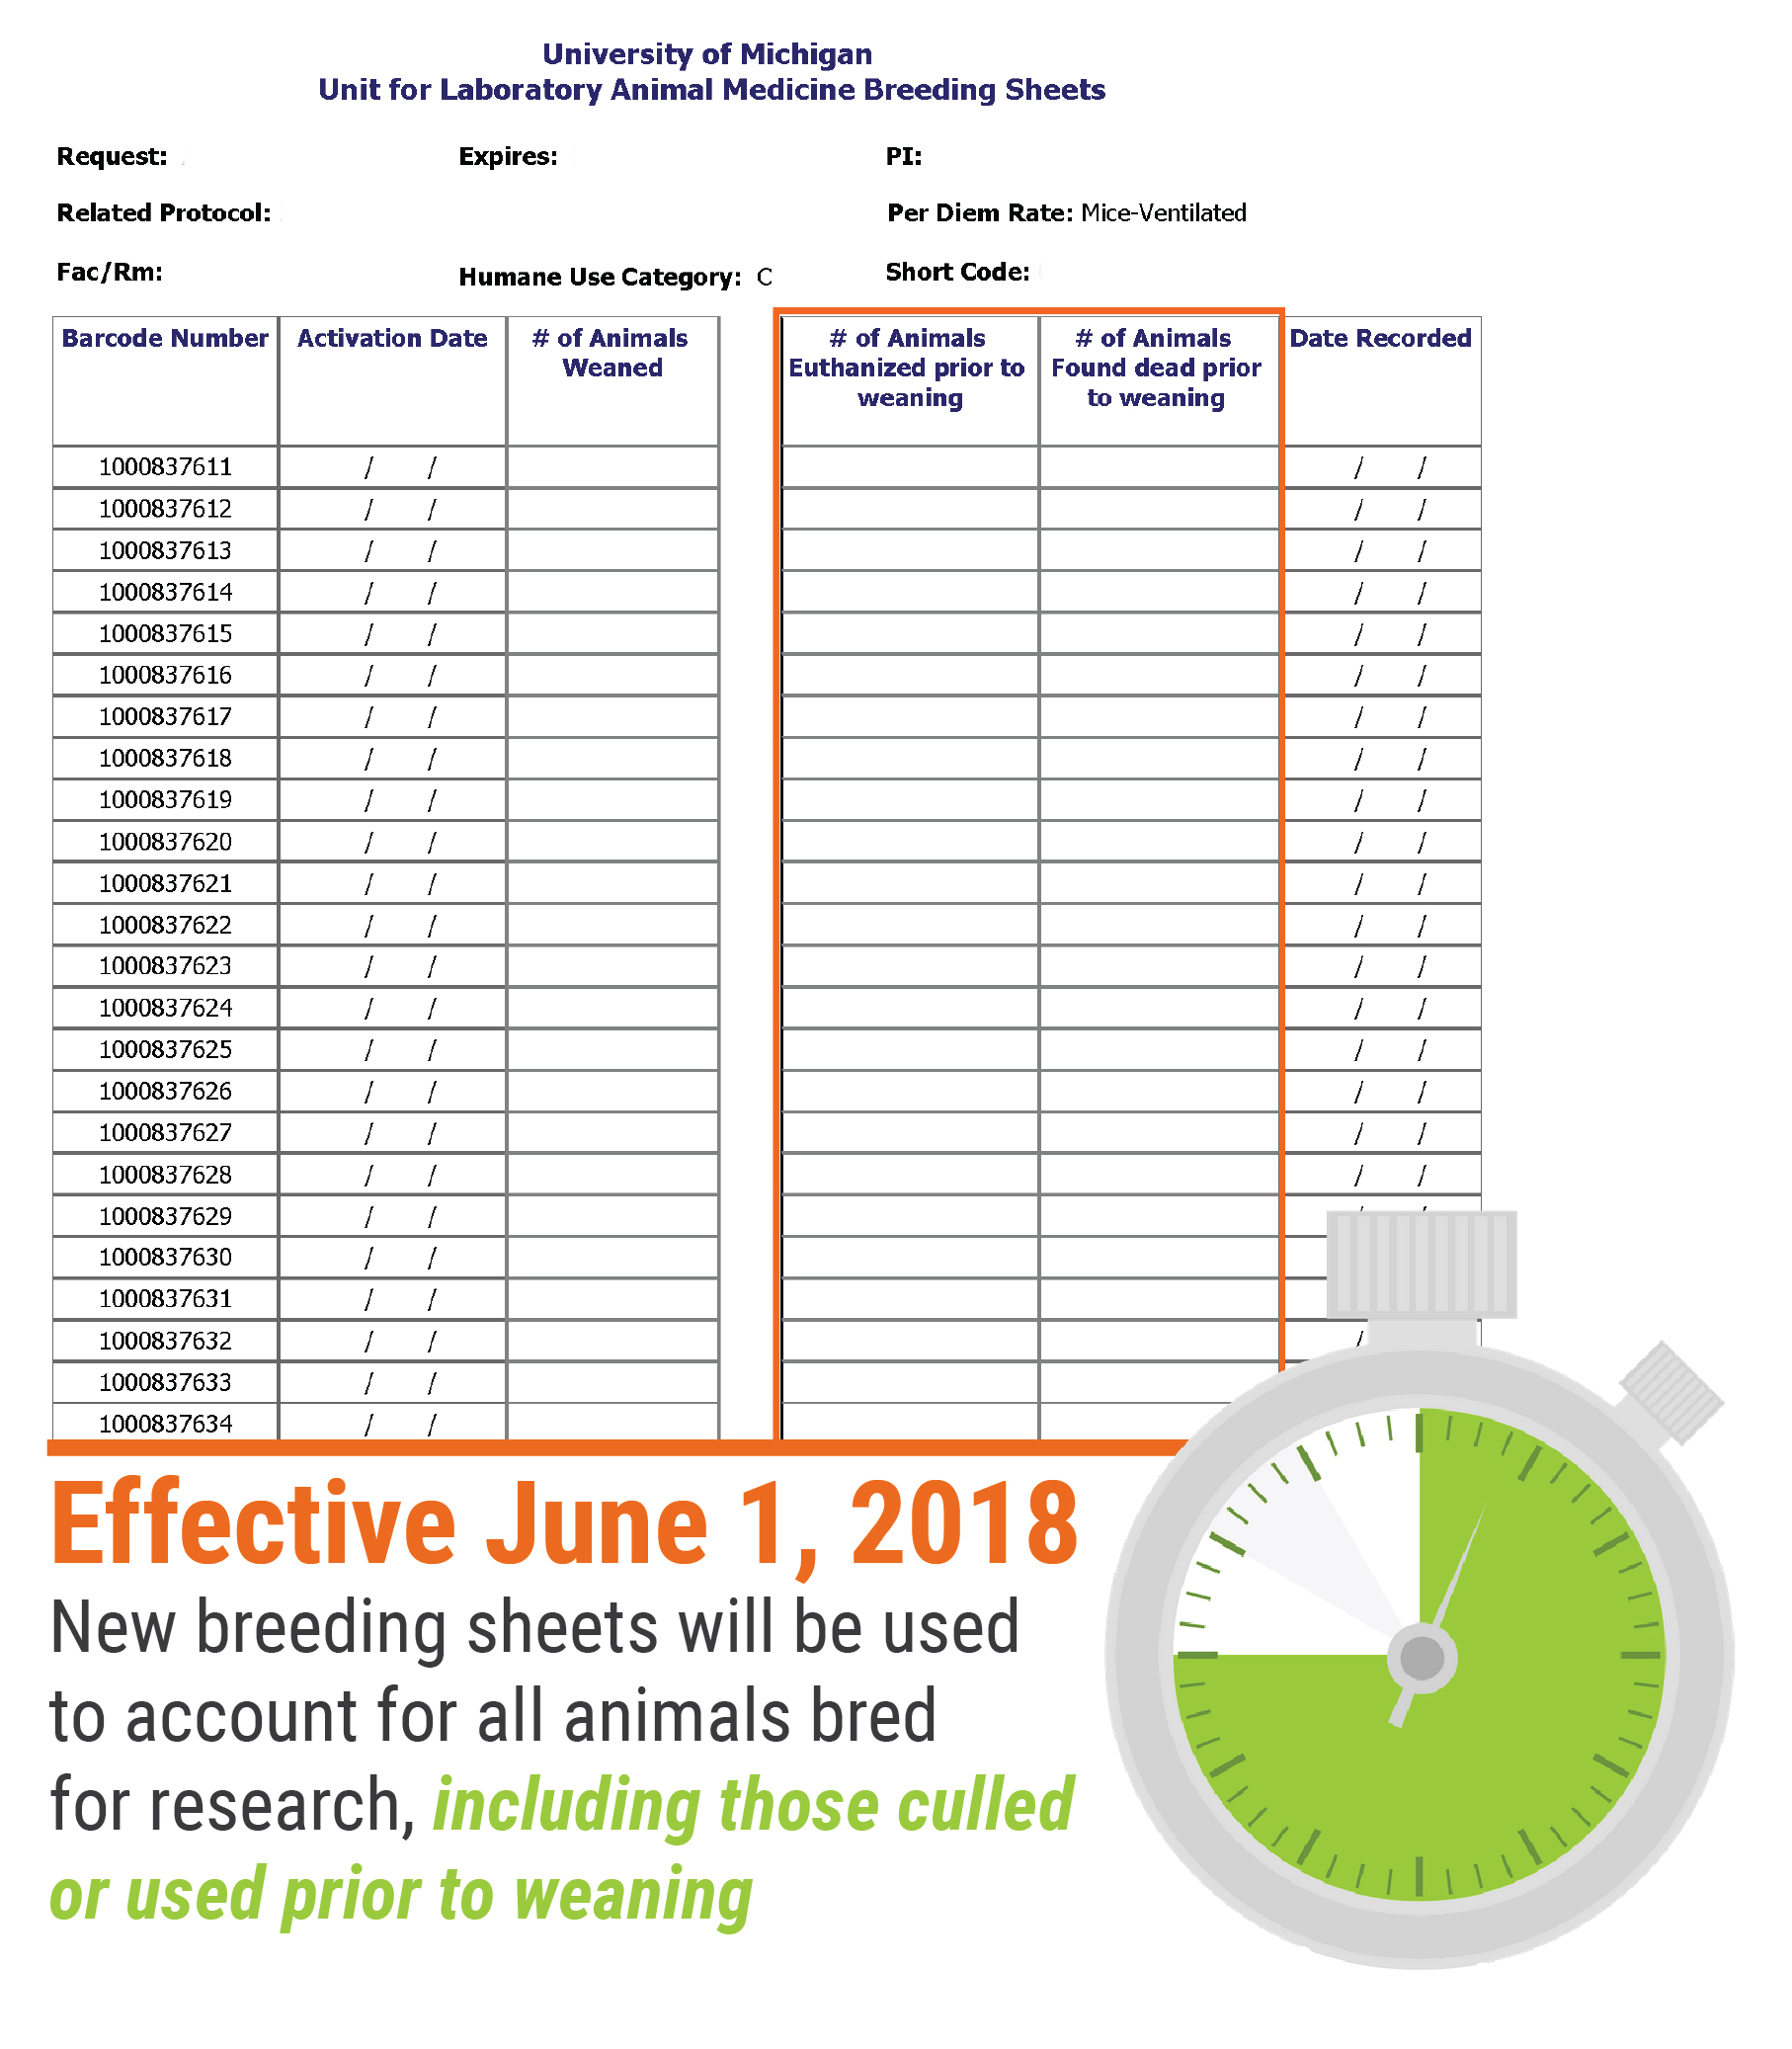 New breeding sheet with reminder icon denoting June 1 effective date